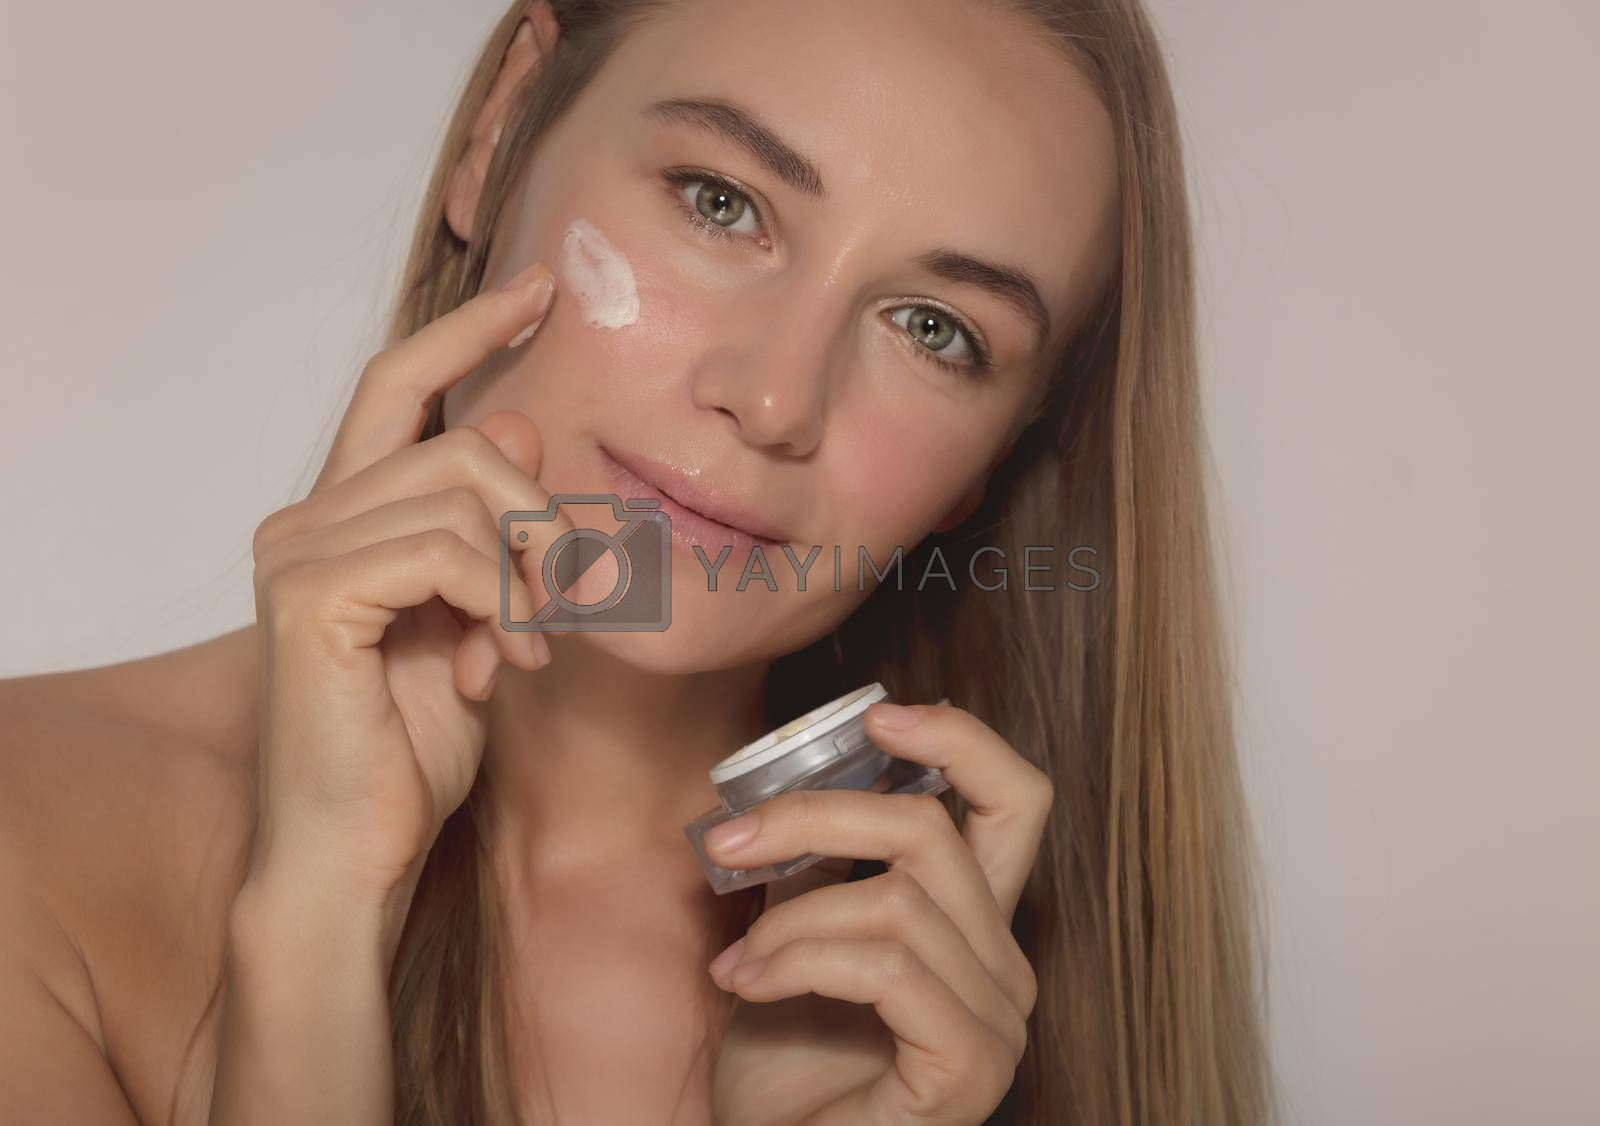 Portrait of a Nice Female Model Using Moisturizing Cream. Isolated on Beige Background. Natural Cosmetics. Beauty and Youthfulness Concept